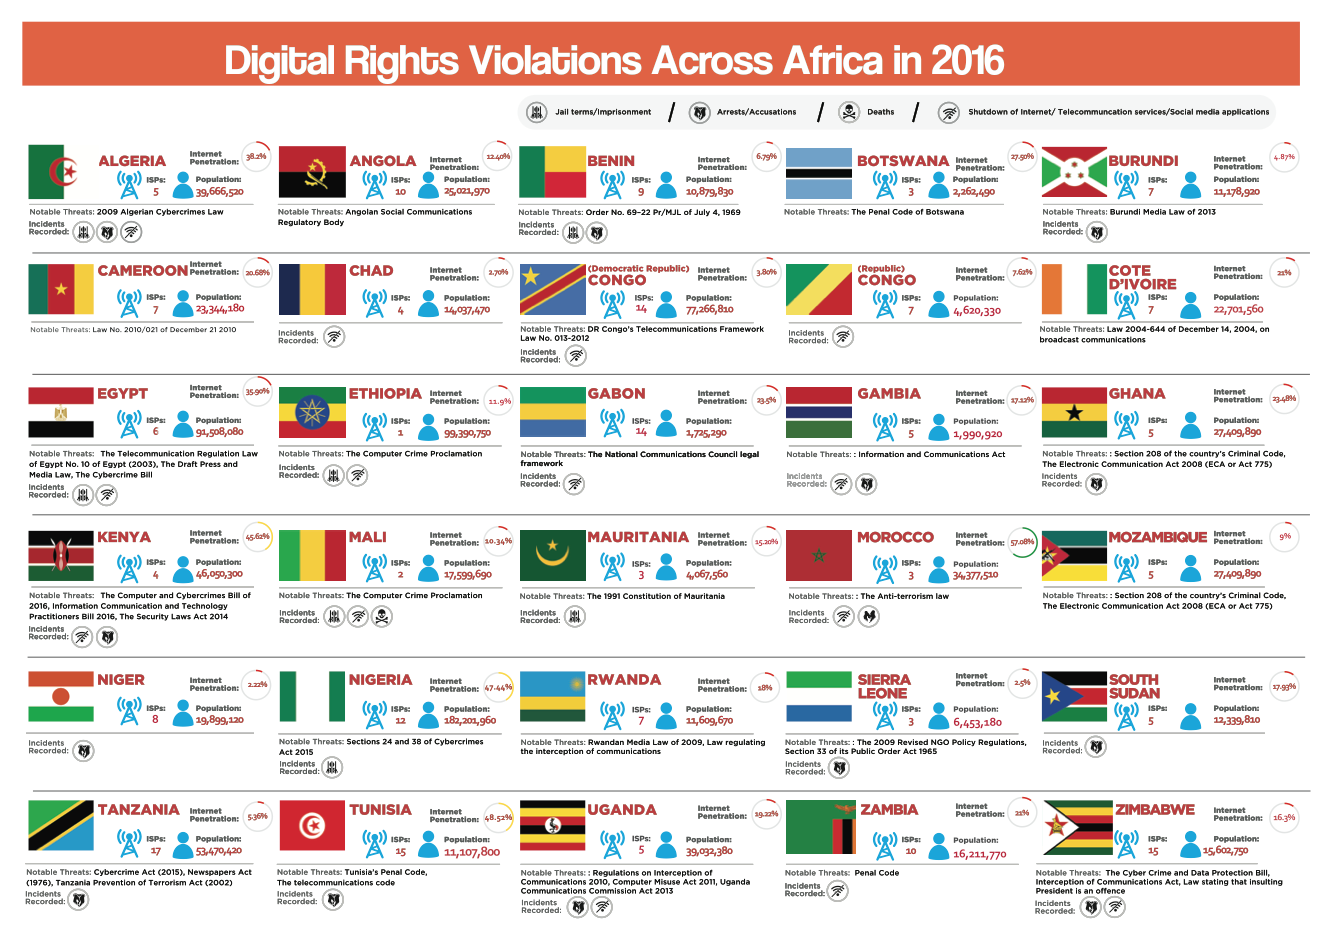 Are Africa's Low Internet Penetration Rates As Bad As Internet Shutdowns?